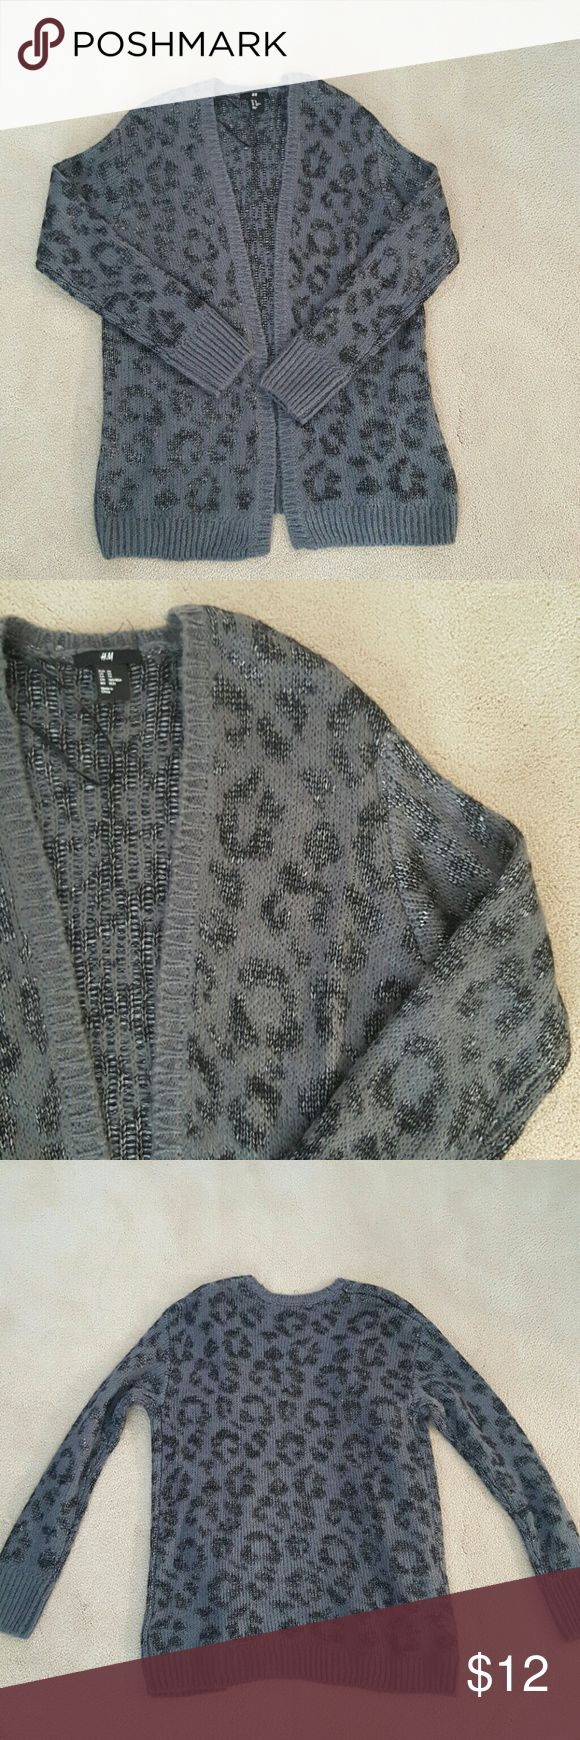 H&M open cardigan Gray animal print open cardigan H&M Sweaters Cardigans